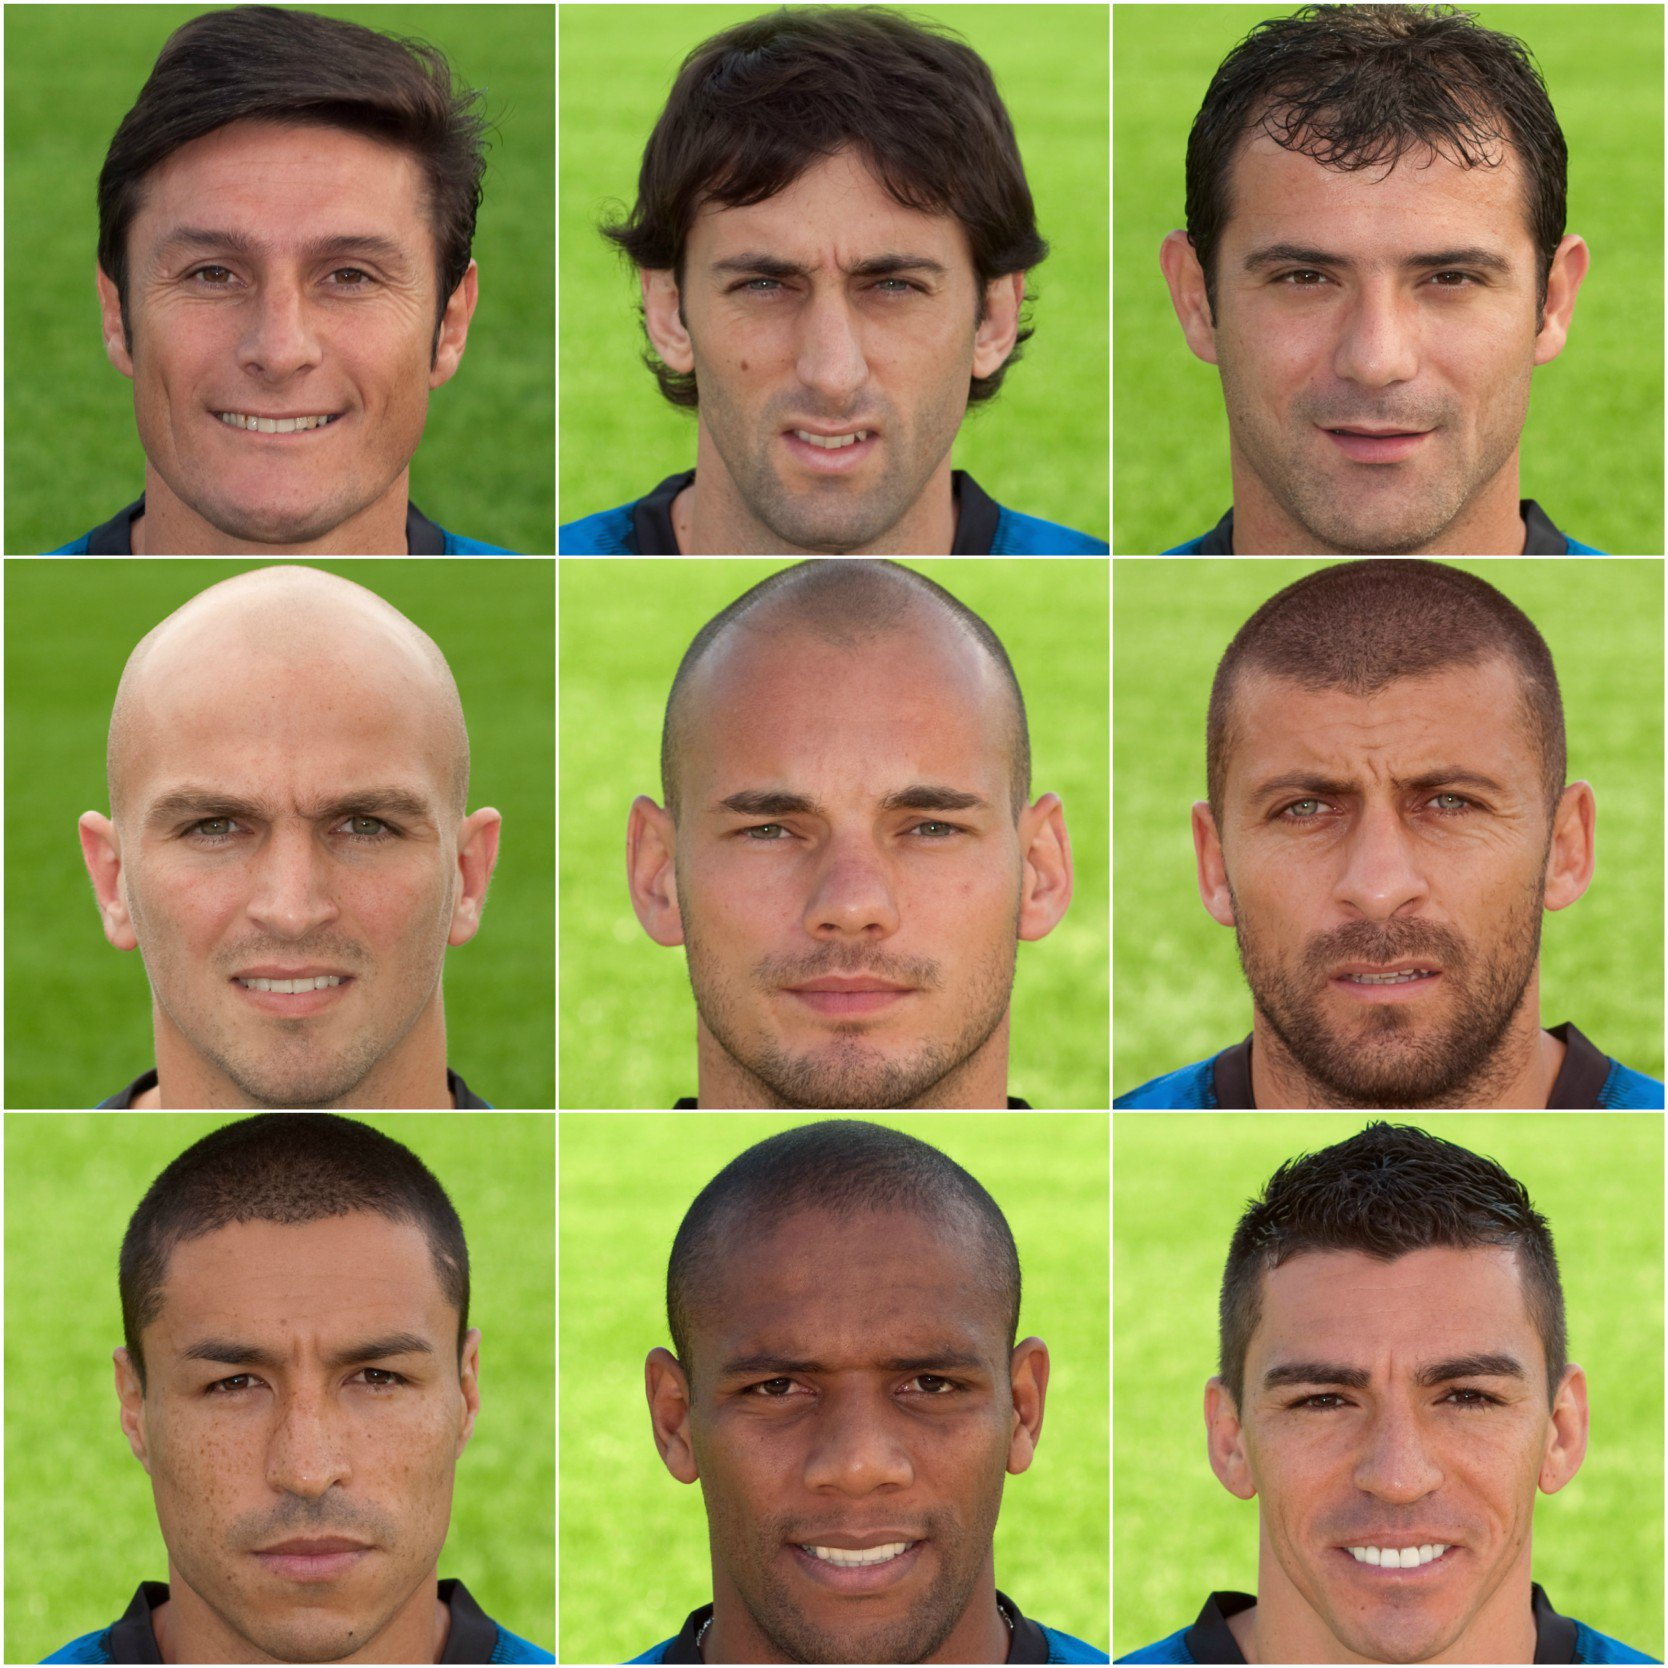 Inter 2010 ��  Favourite player? ��⚫  #UCL #TBT #ThrowbackThursday ⏰�� https://t.co/xMvQmmomJ8